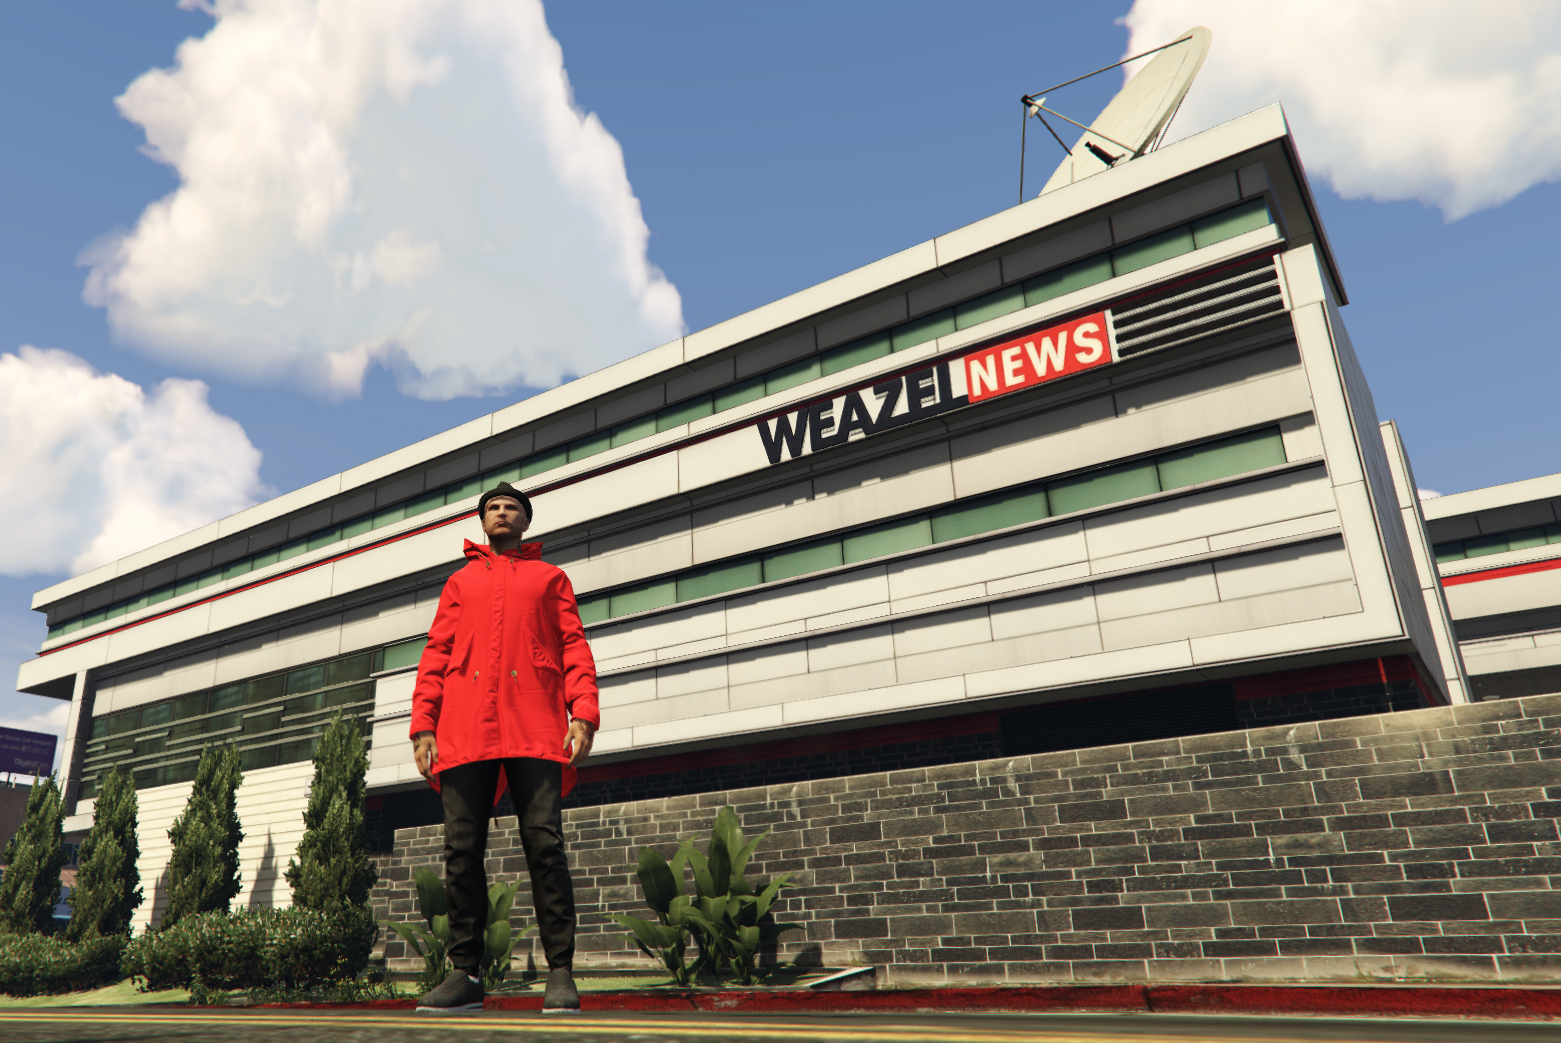 I robbed a string of banks unarmed by posing as a journalist